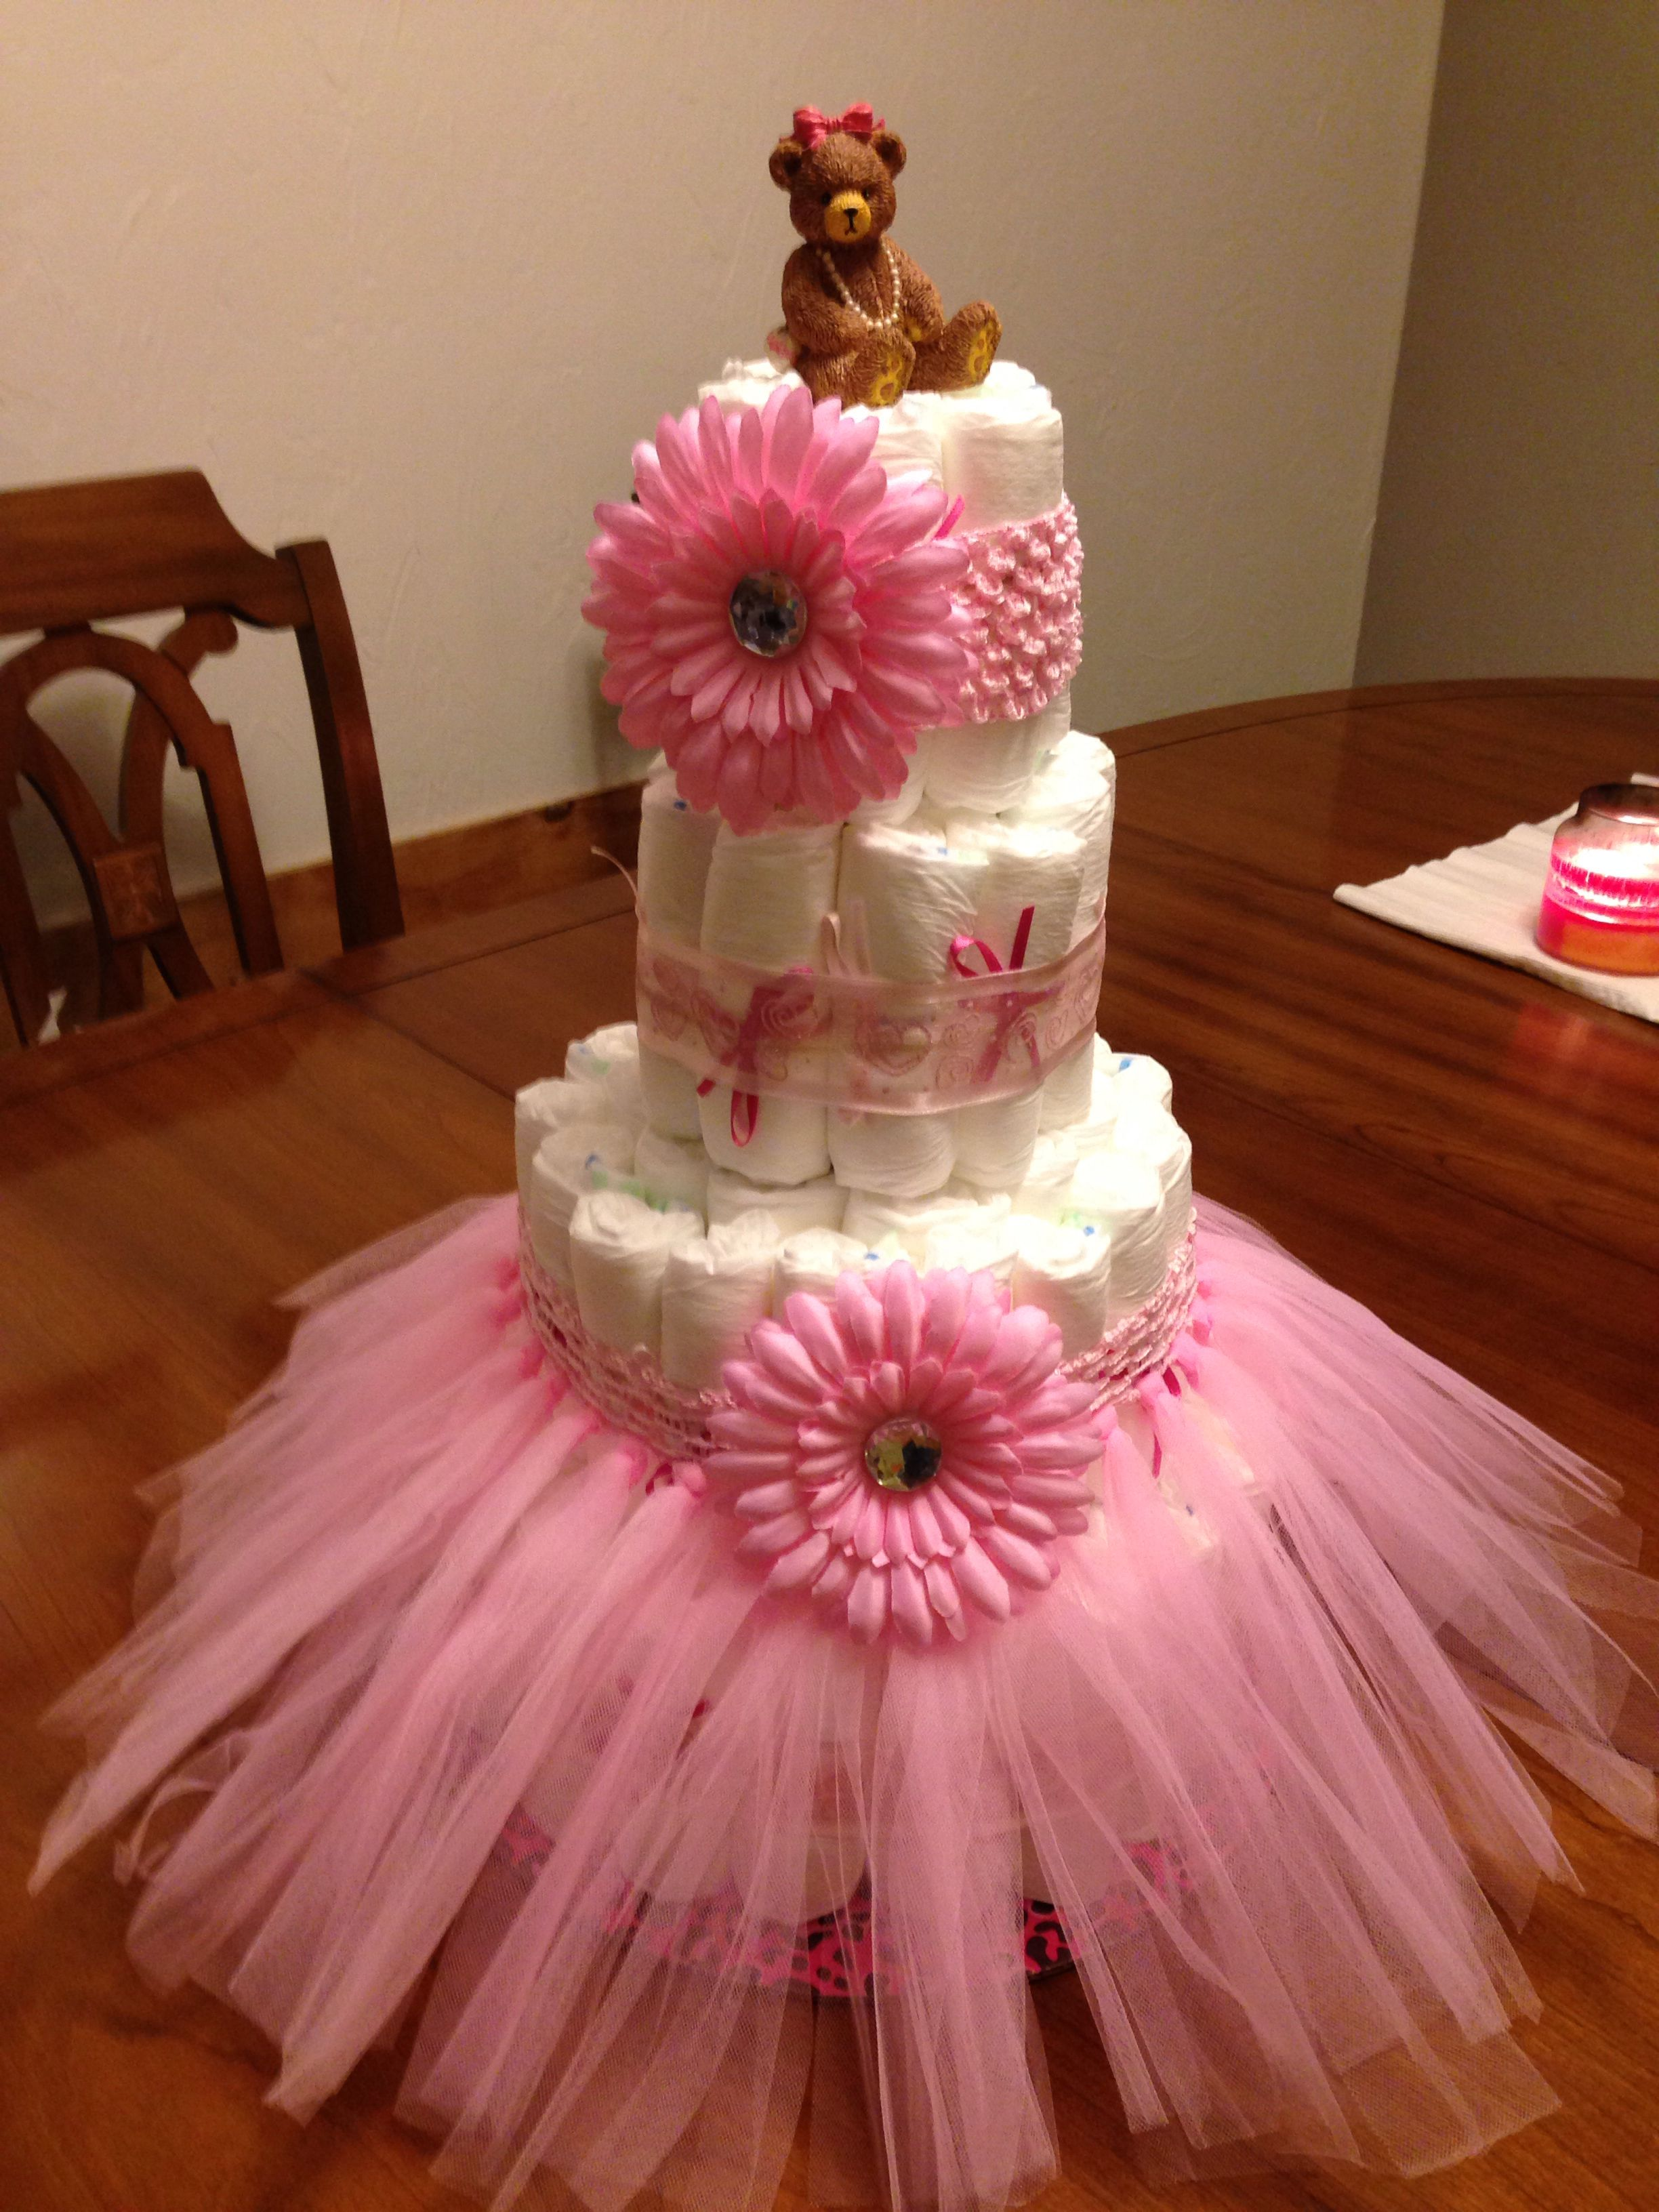 Baby shower diaper cake using Hobby Lobby kit and a little imagination. Creative Ideas ...